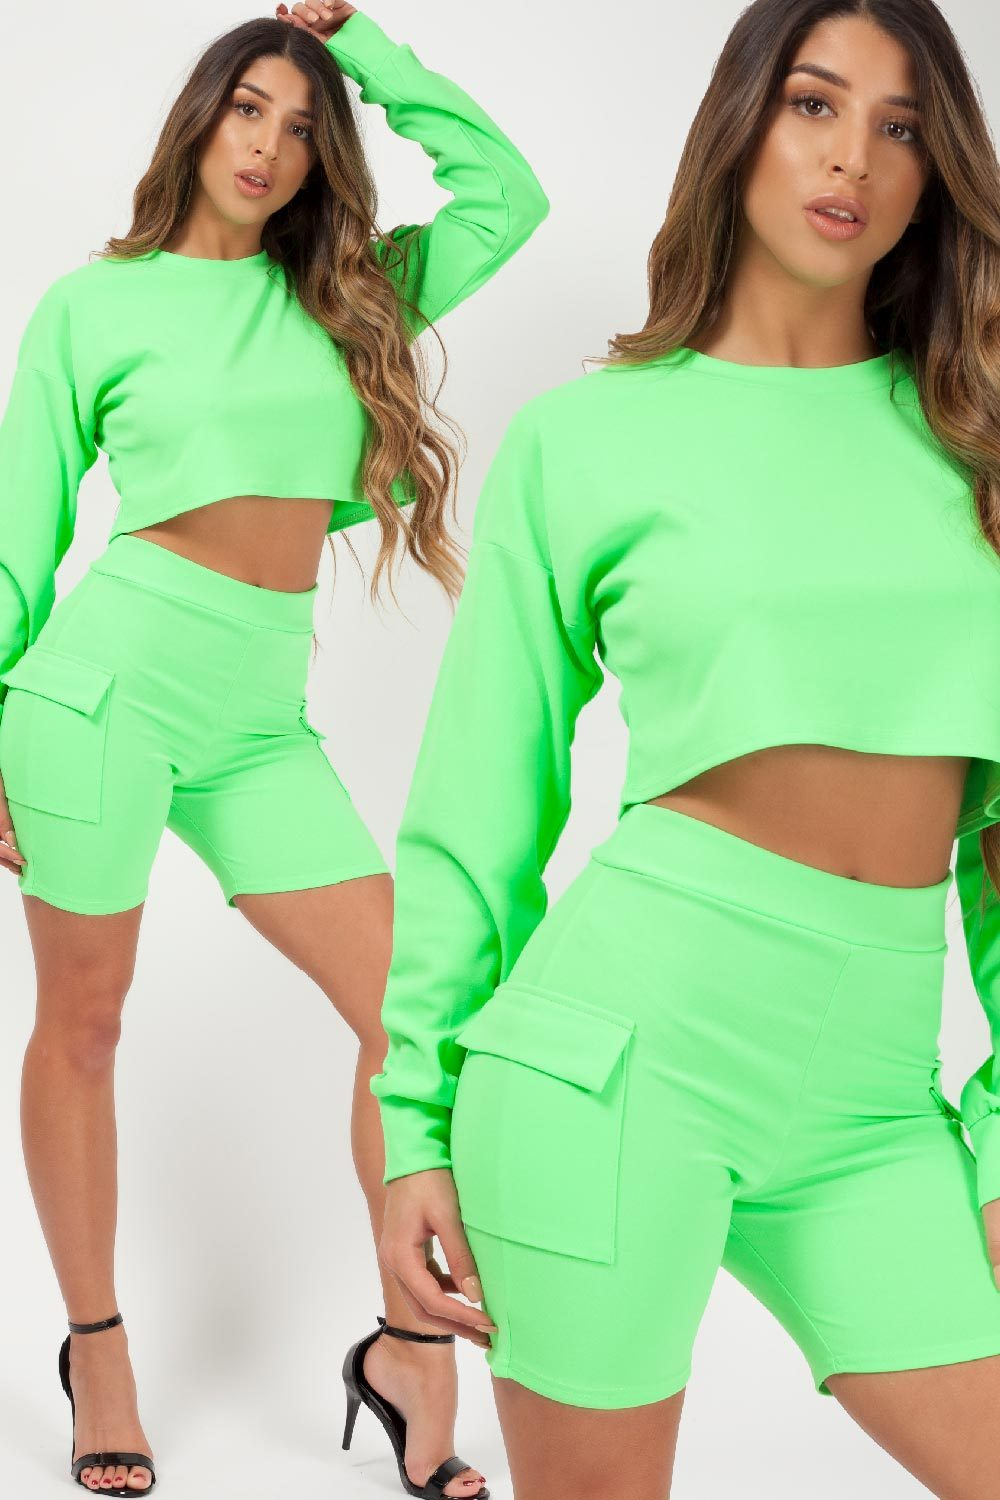 cycling shorts and crop top set styledup fashion